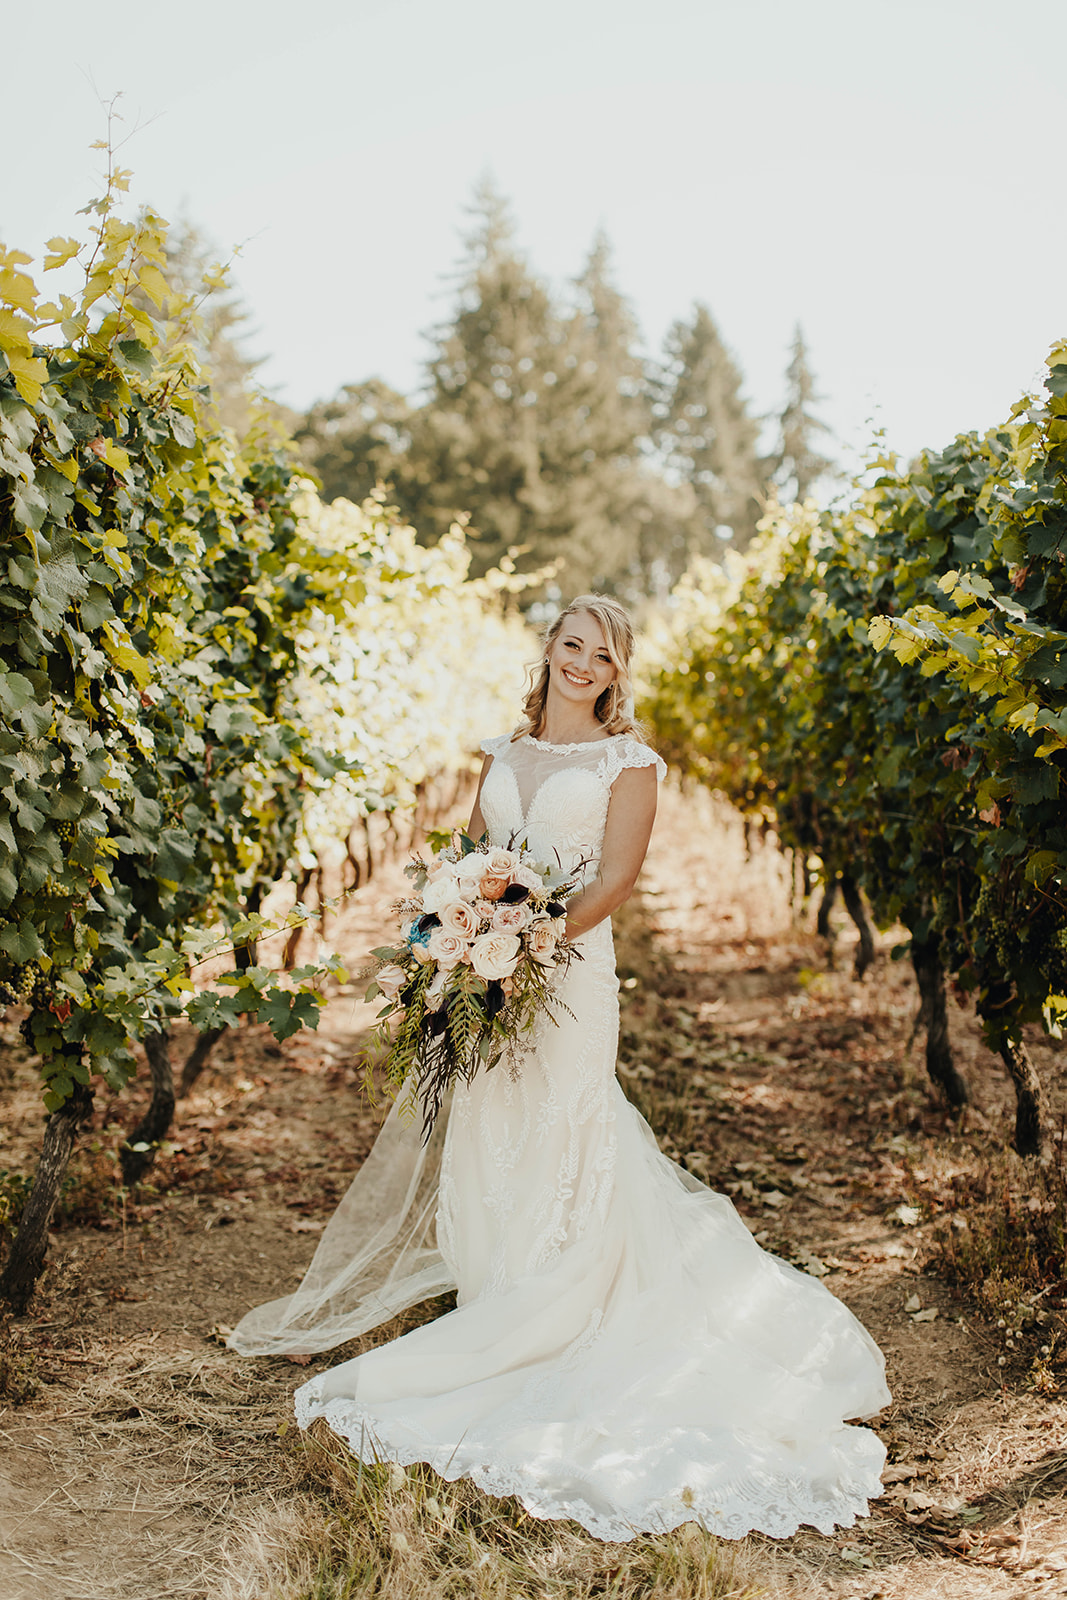 A Romantic Vineyard Wedding — The Overwhelmed Bride Wedding Ideas Inspiration Blog